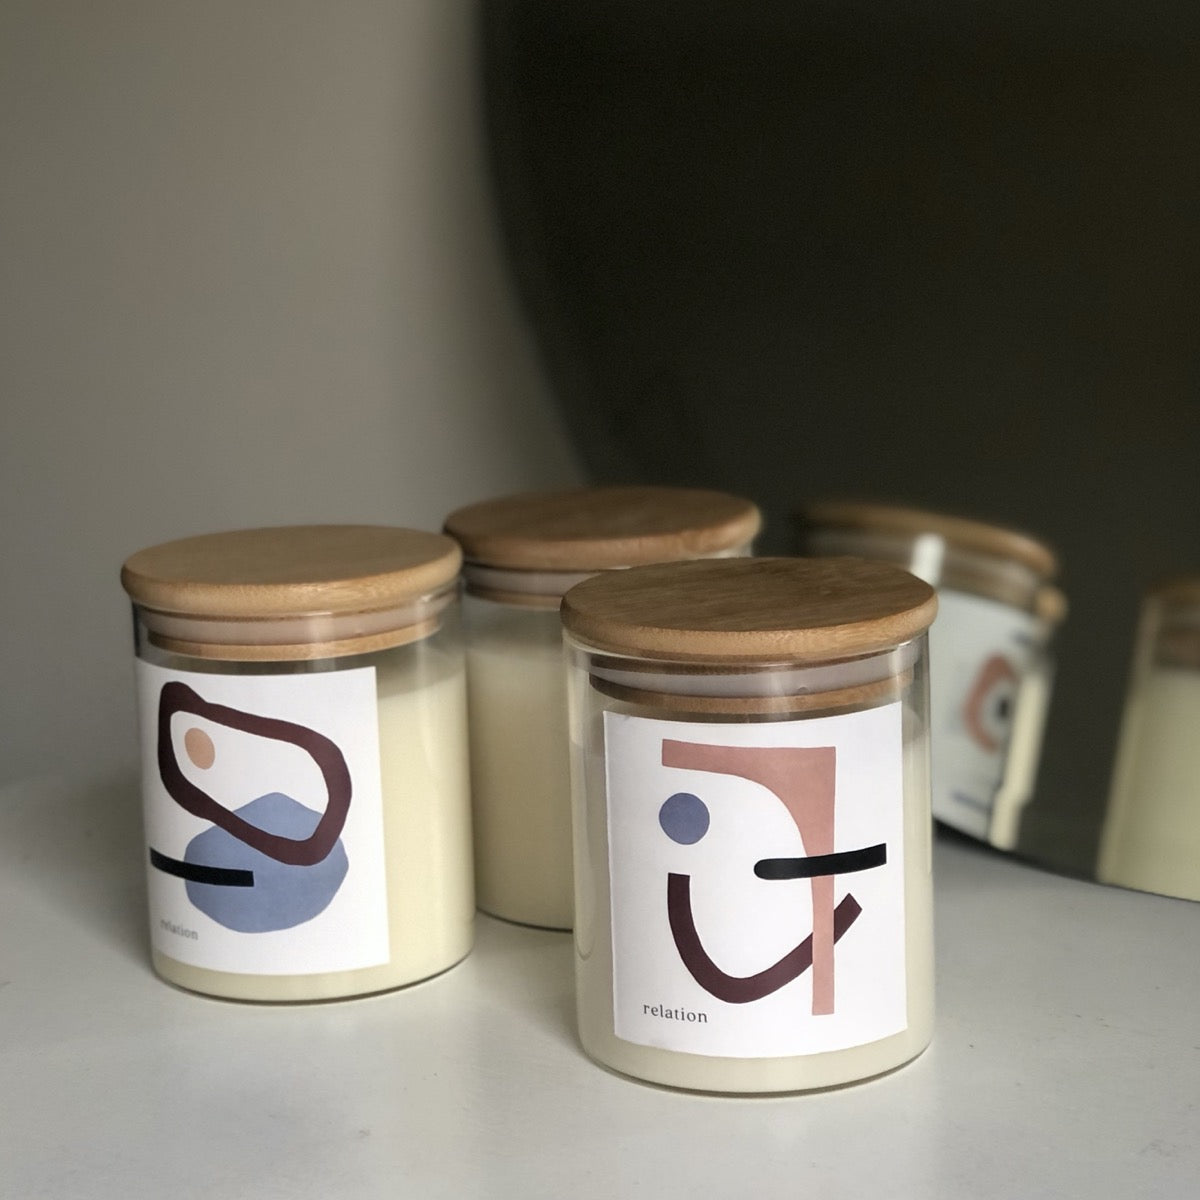 Relation Candles:  Wild Bloom - Jasmine + Ylang Ylang + Sandalwood + Clove